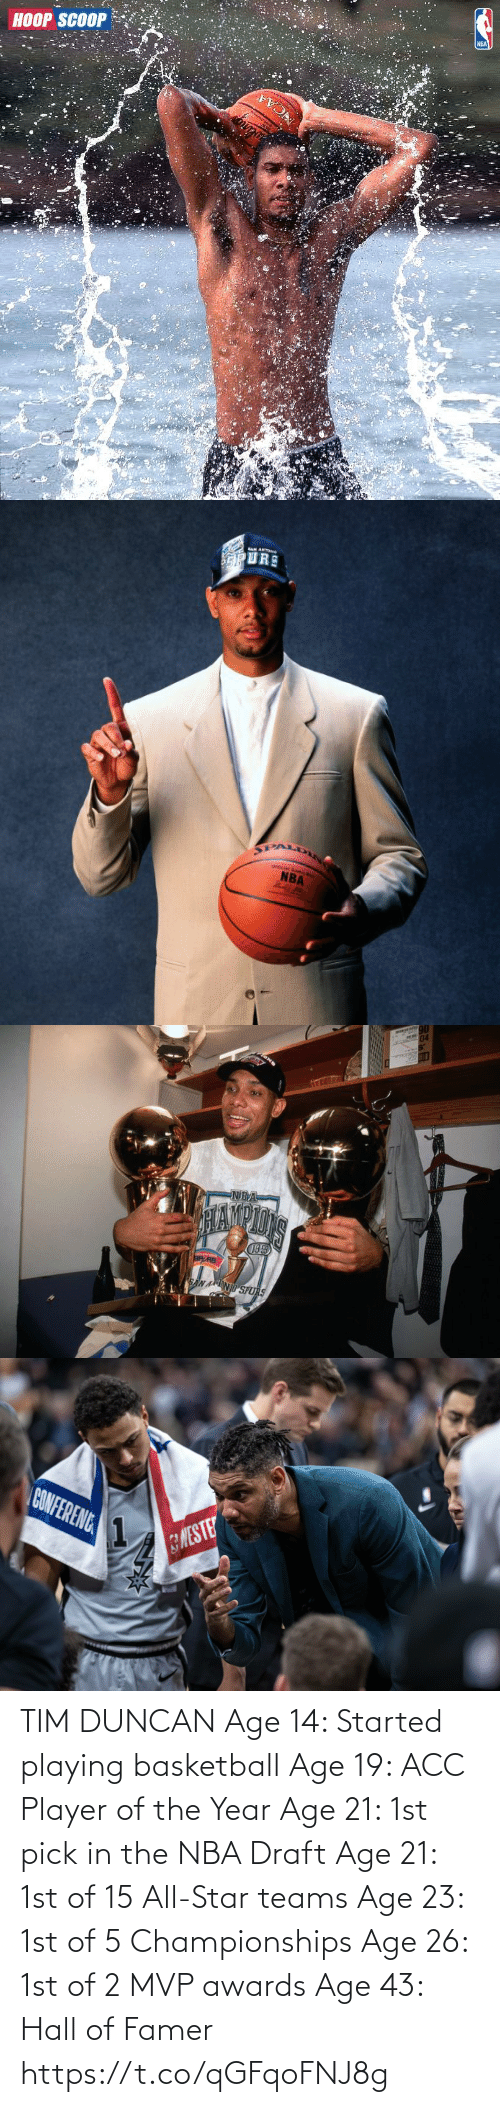 1St: TIM DUNCAN  Age 14: Started playing basketball Age 19: ACC Player of the Year Age 21: 1st pick in the NBA Draft Age 21: 1st of 15 All-Star teams Age 23: 1st of 5 Championships Age 26: 1st of 2 MVP awards Age 43: Hall of Famer https://t.co/qGFqoFNJ8g